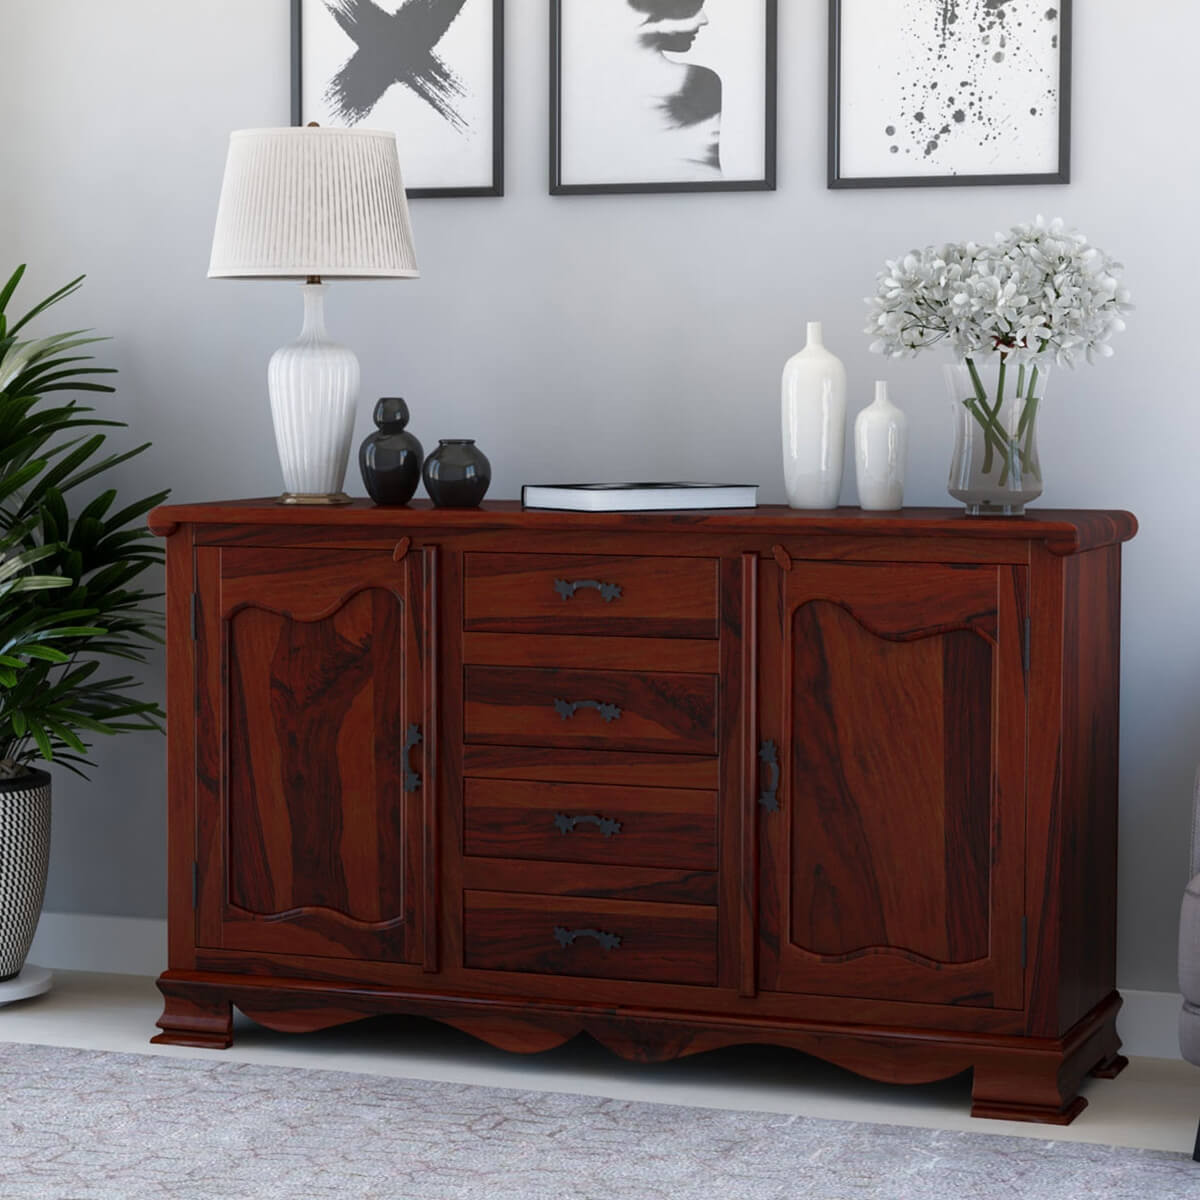 French solid rosewood 4 drawer sideboard cabinet for Dining room sideboard